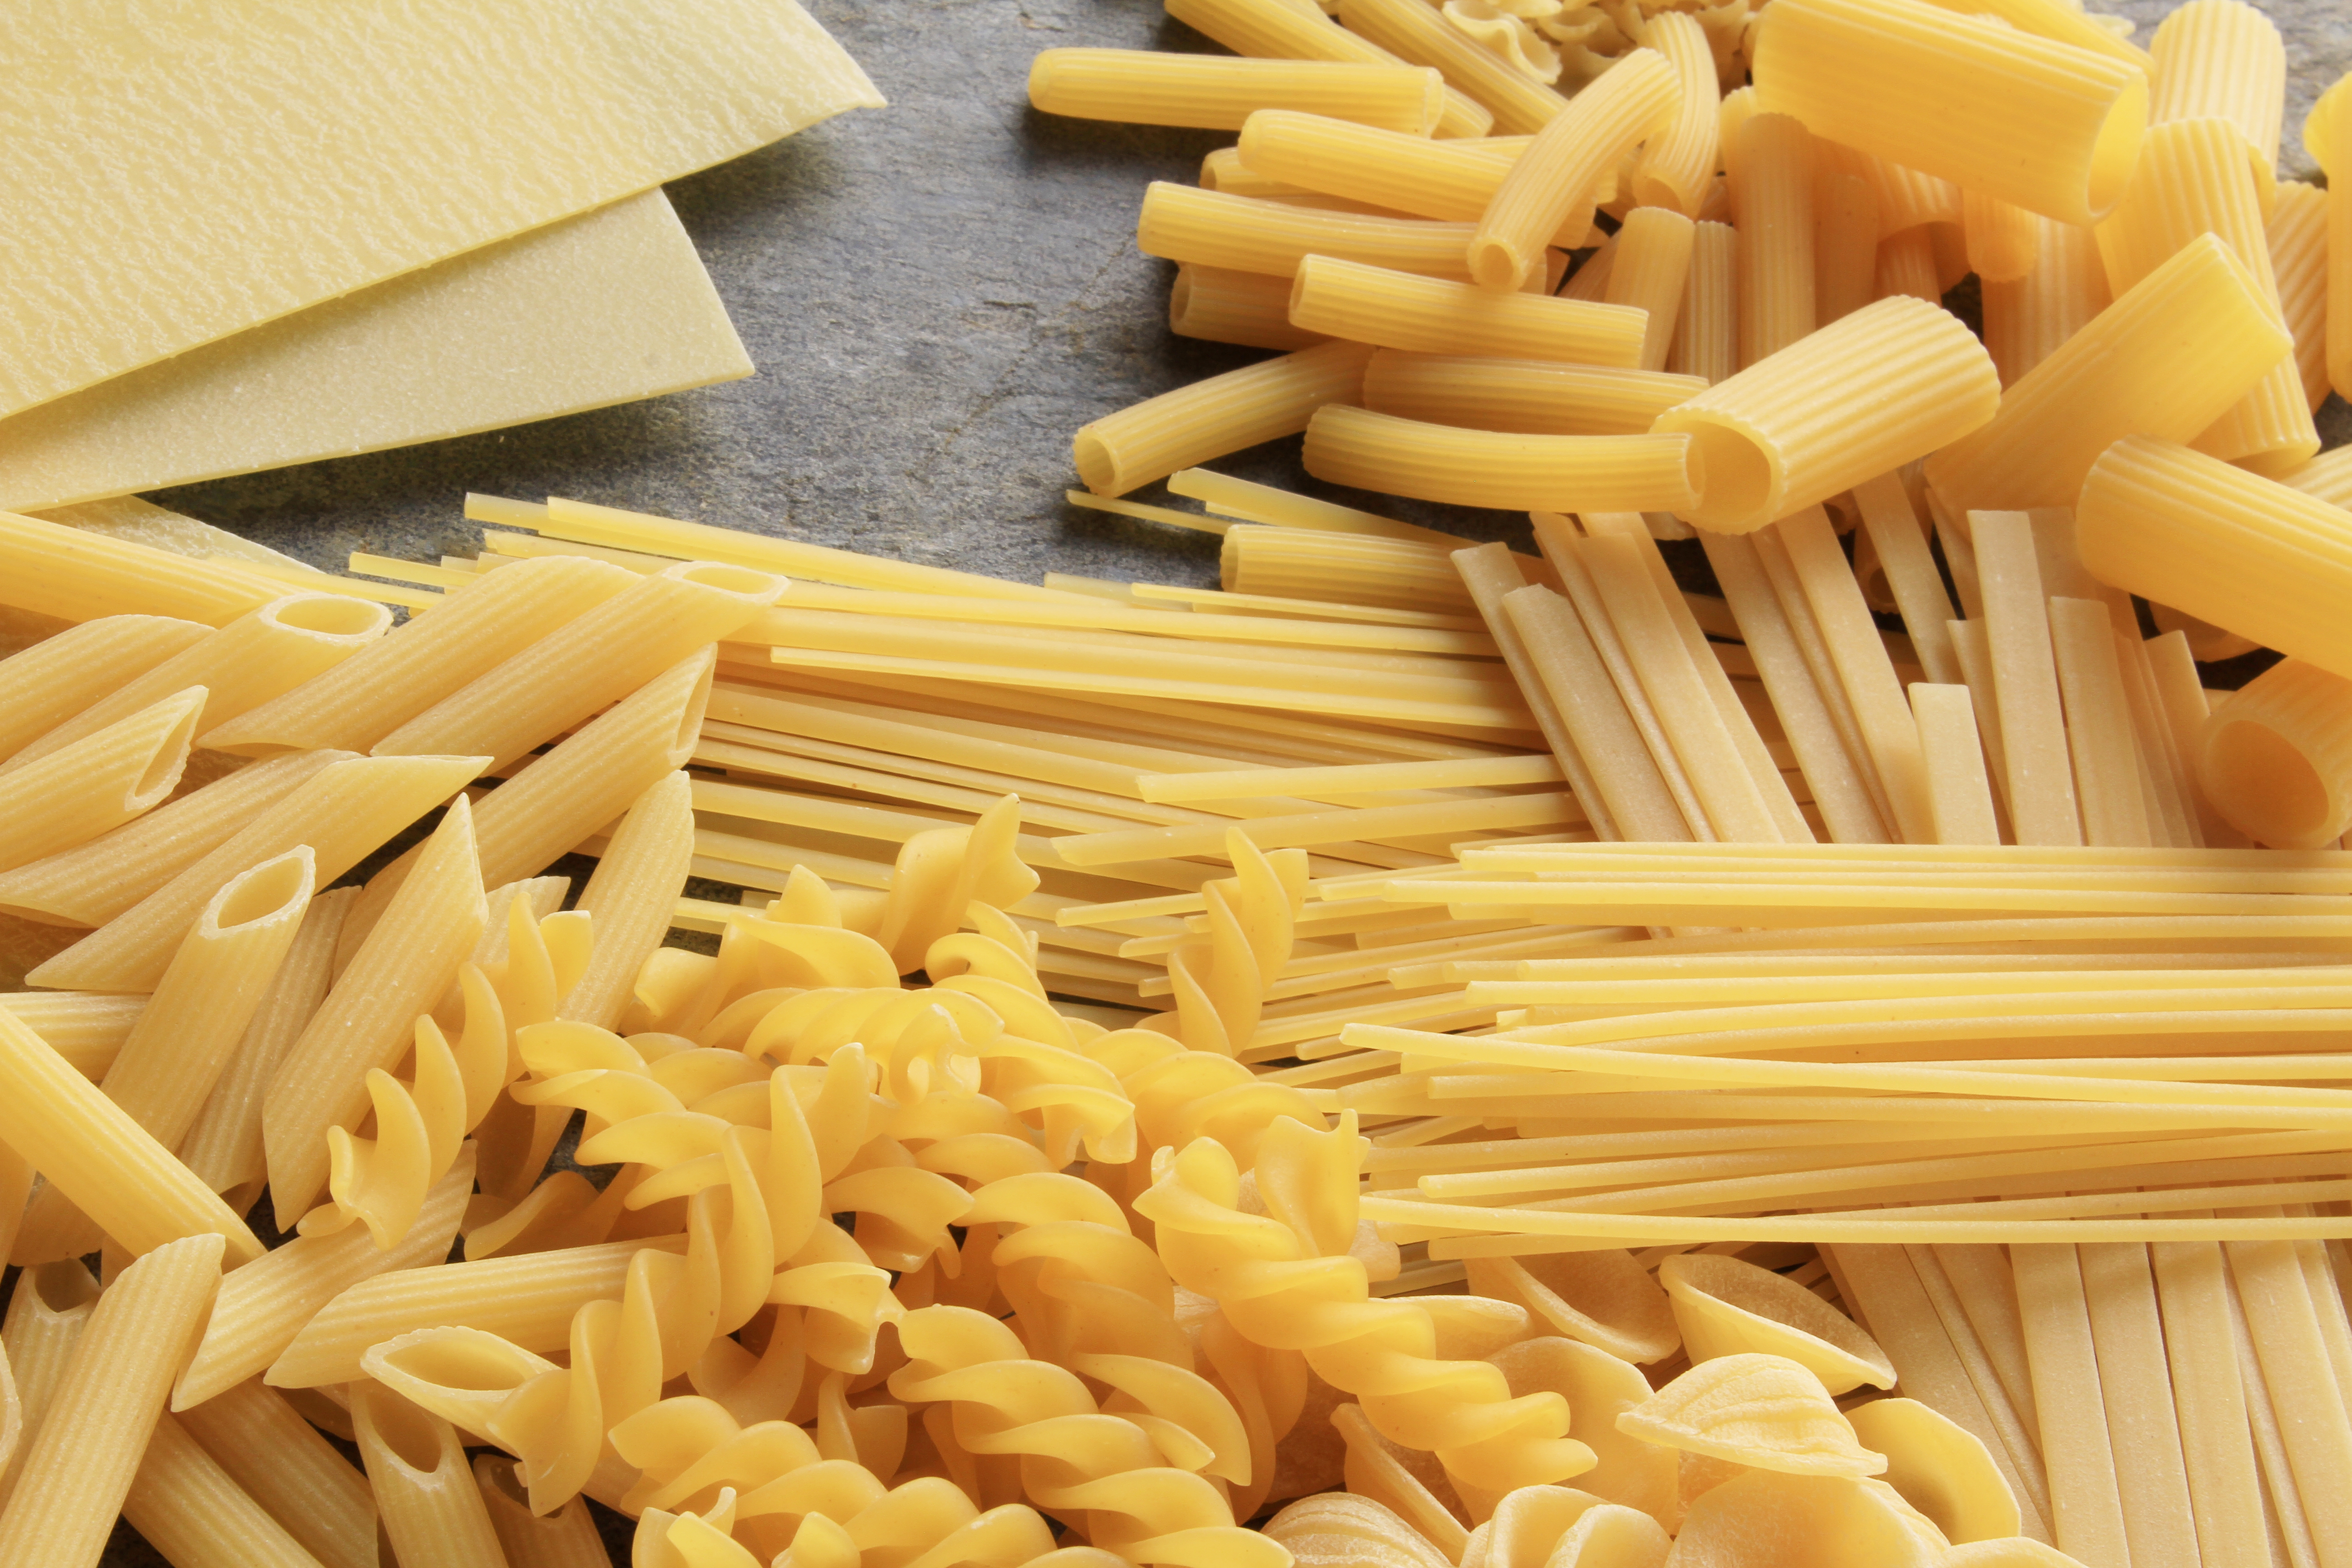 The End of Pasta?